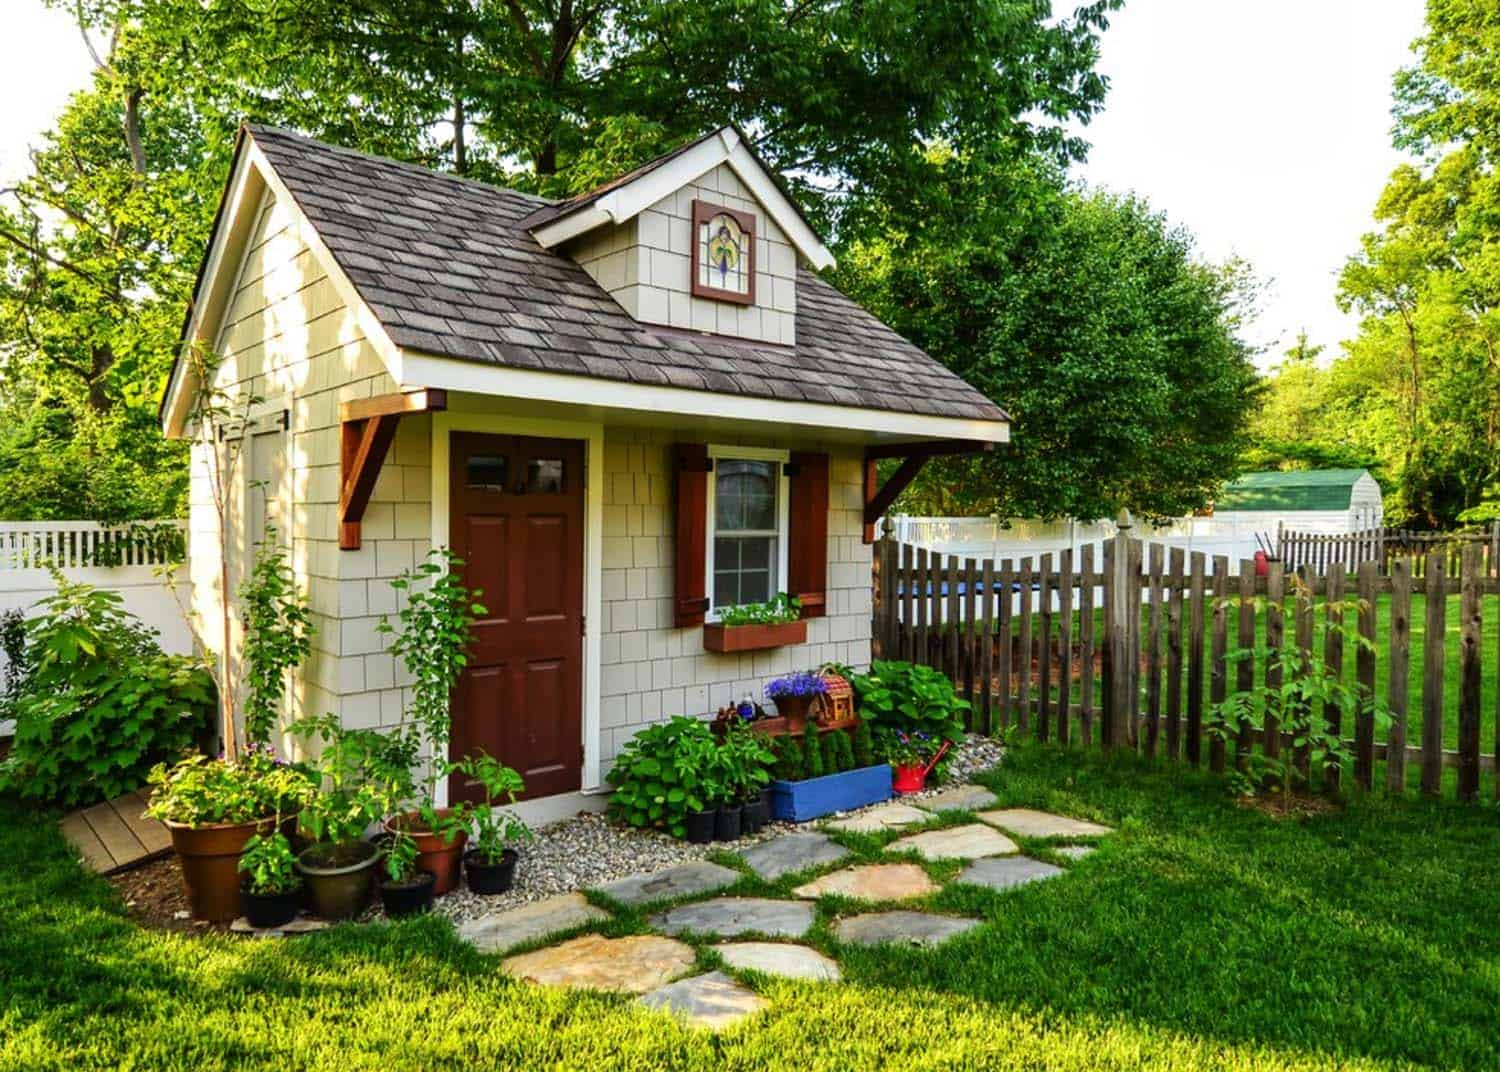 40 Simply amazing garden shed ideas on inside potting sheds designs, above ground pool landscape designs, stone signs and designs, garden gate designs, subdivision entry designs, gardening art designs,